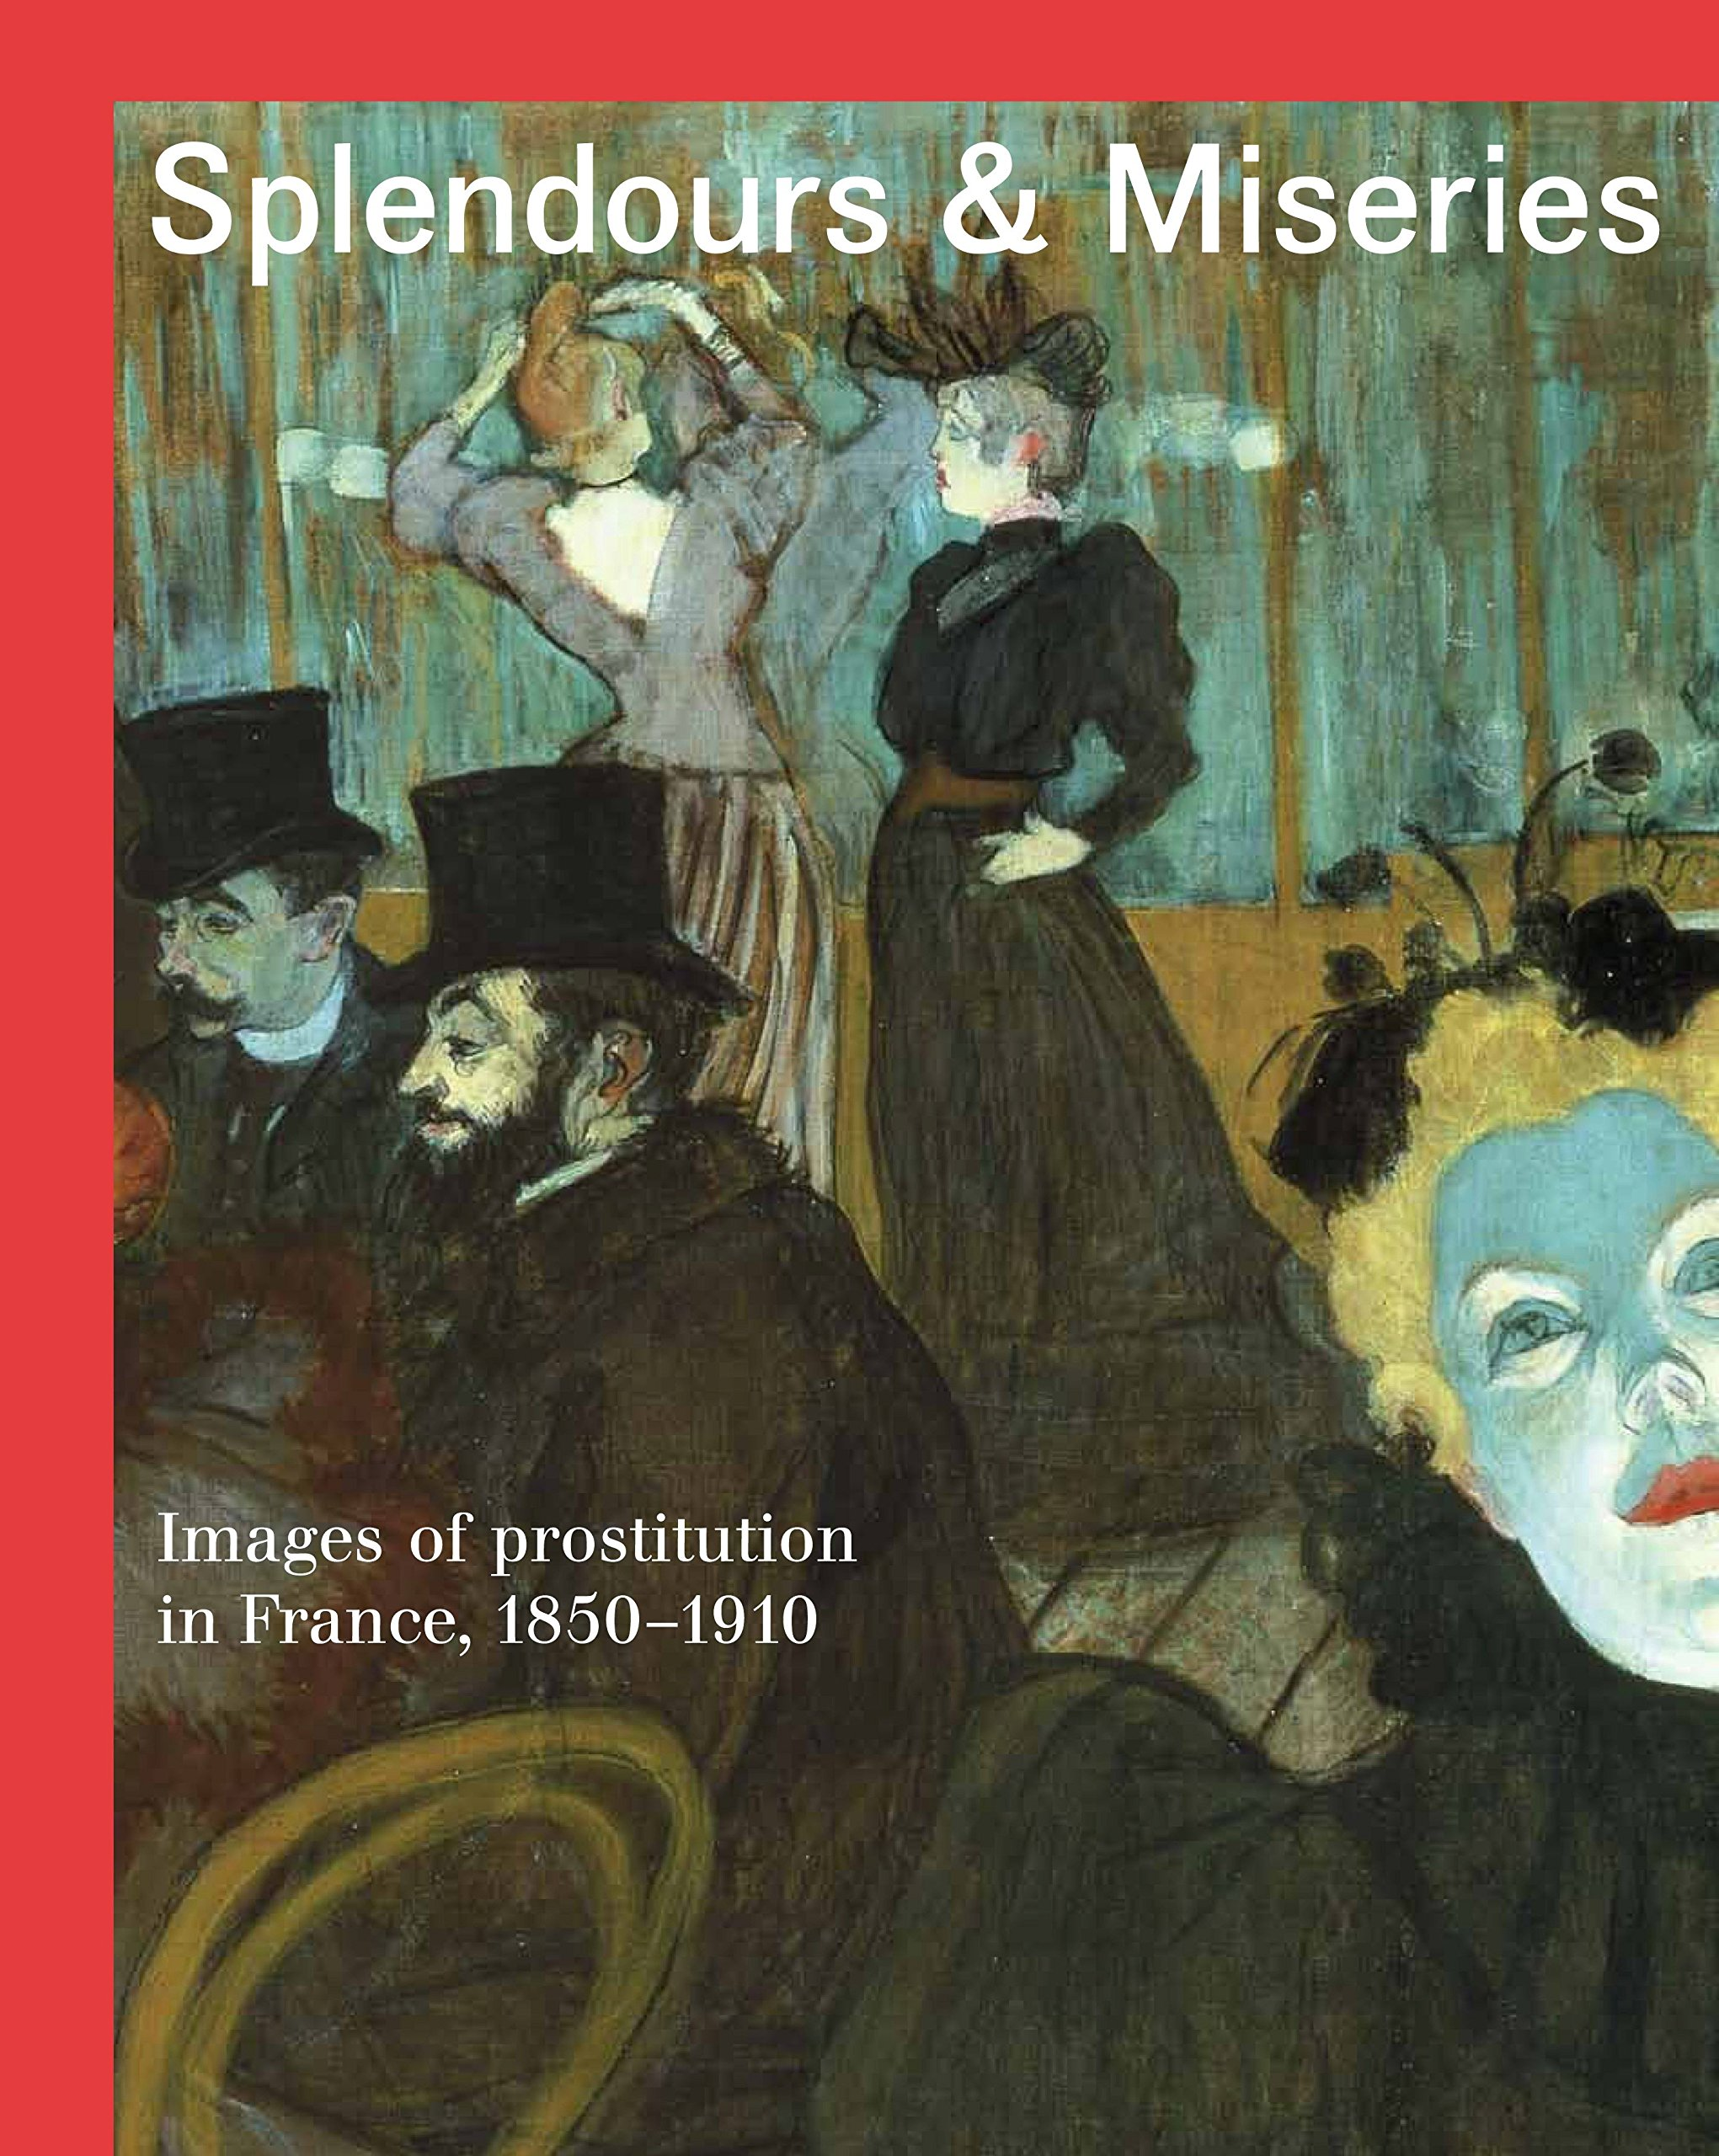 Splendours and Miseries: Images of Prostitution in France, 1850-1910 PDF